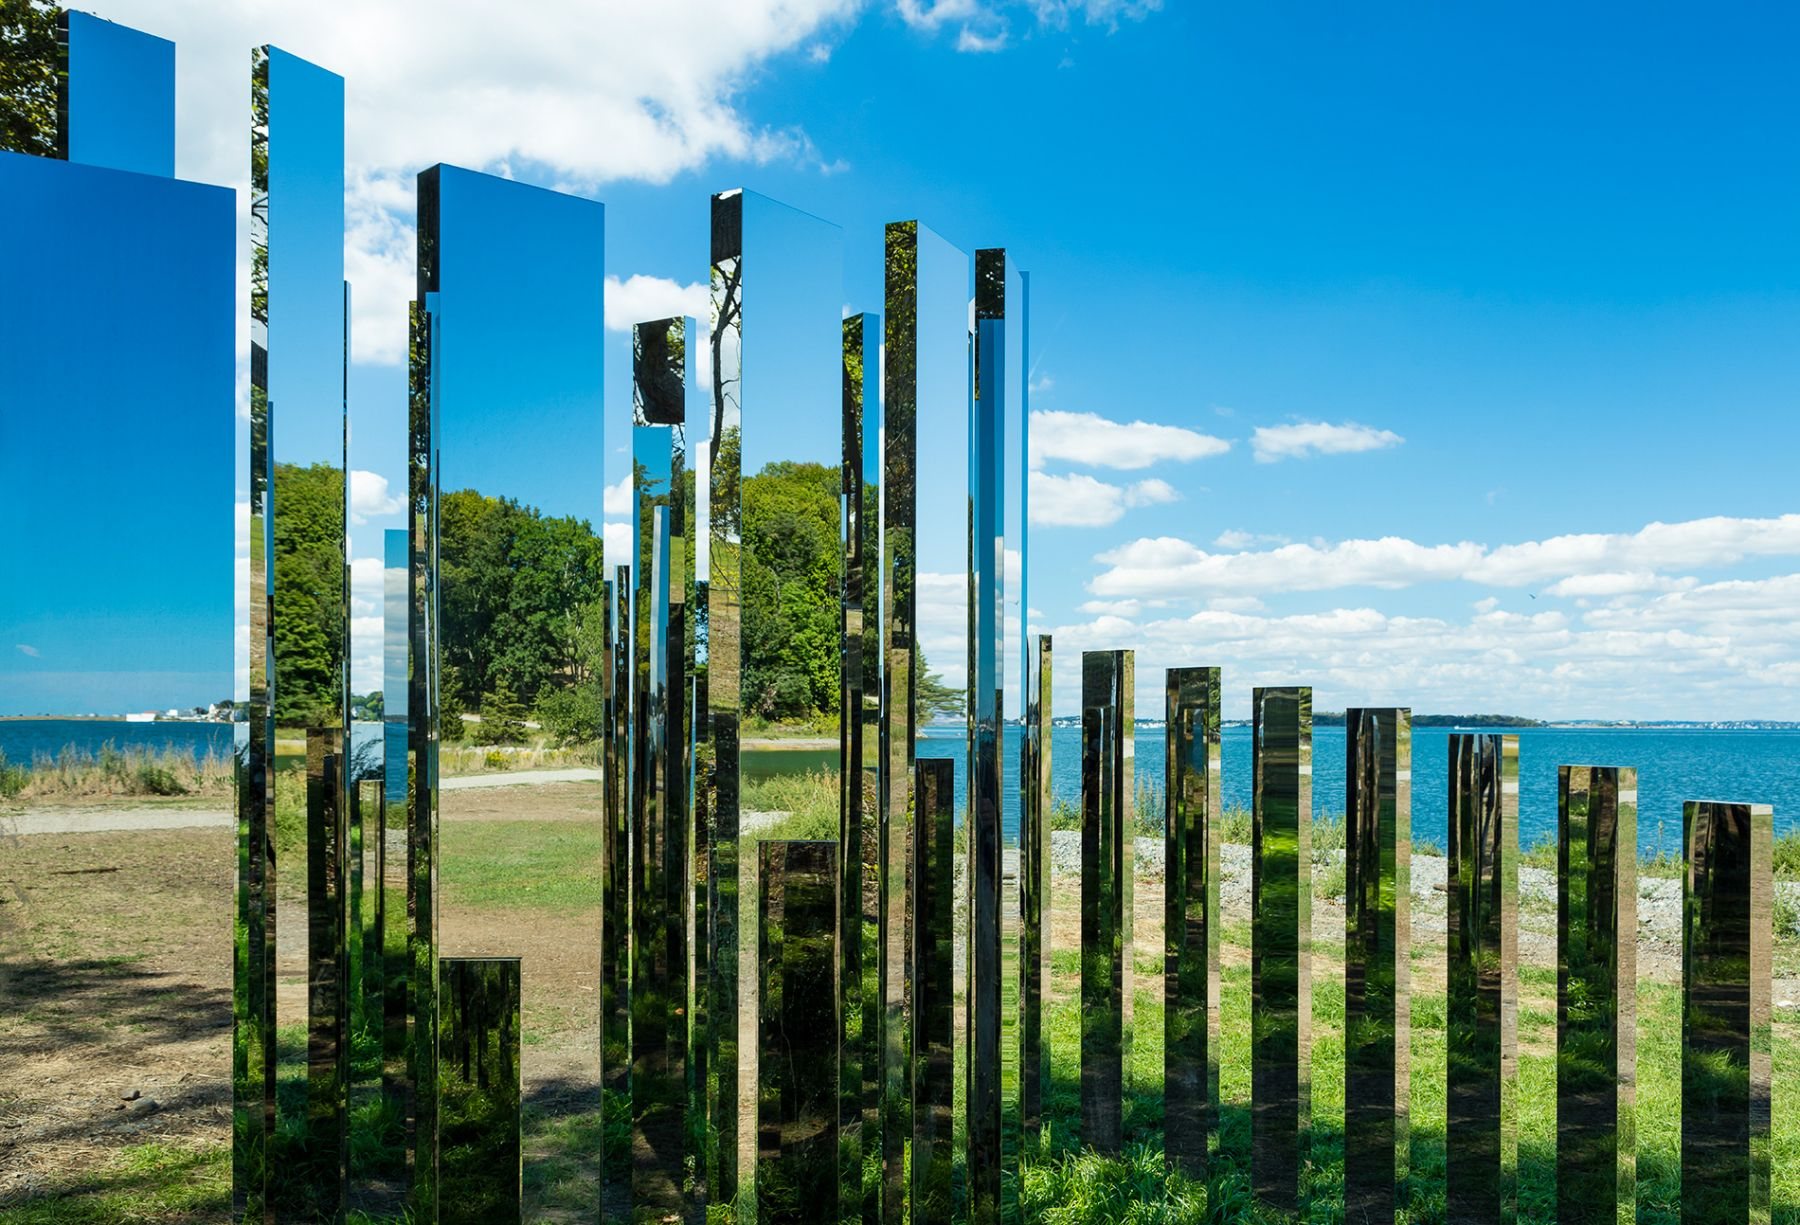 Jeppe Hein, A New End, 2016